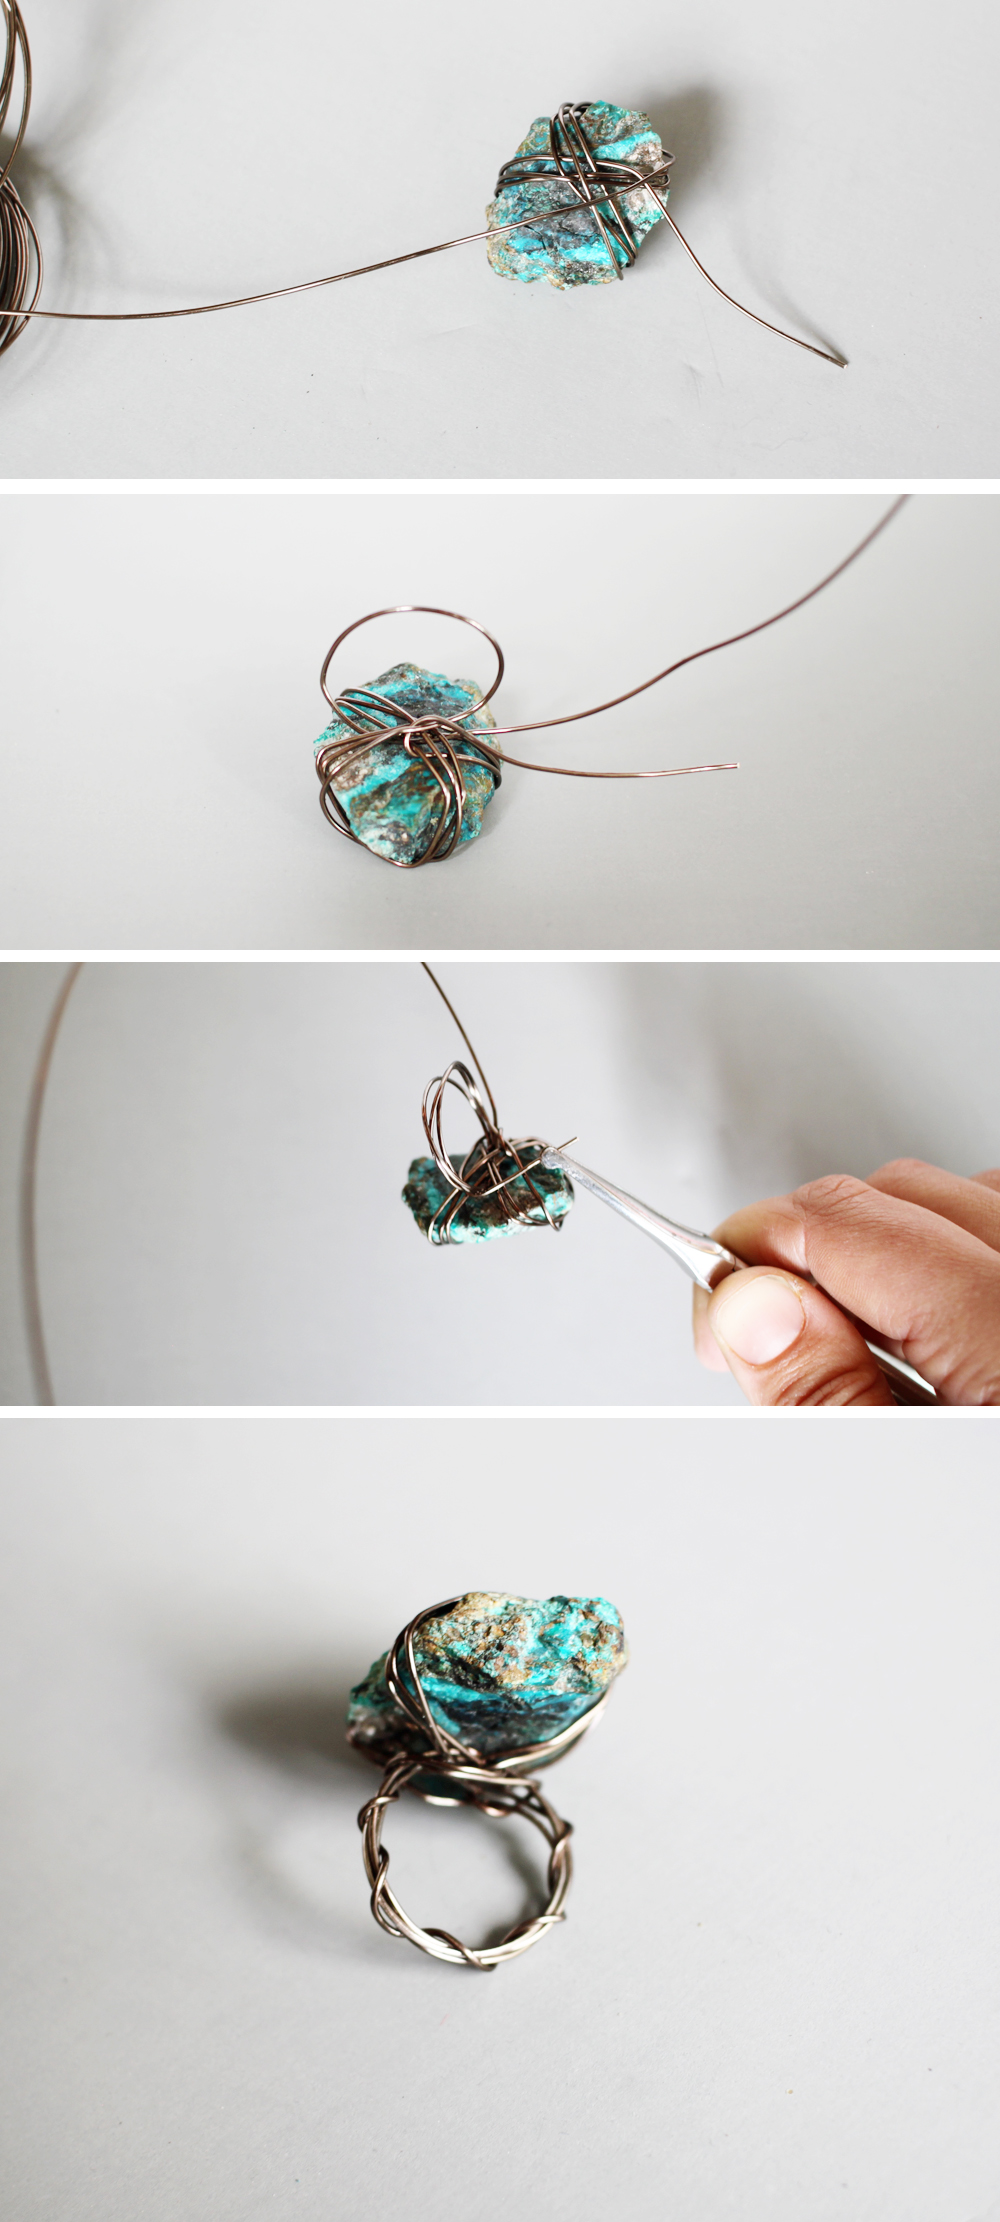 Small Friendly Diy Wire And Stone Jewelry